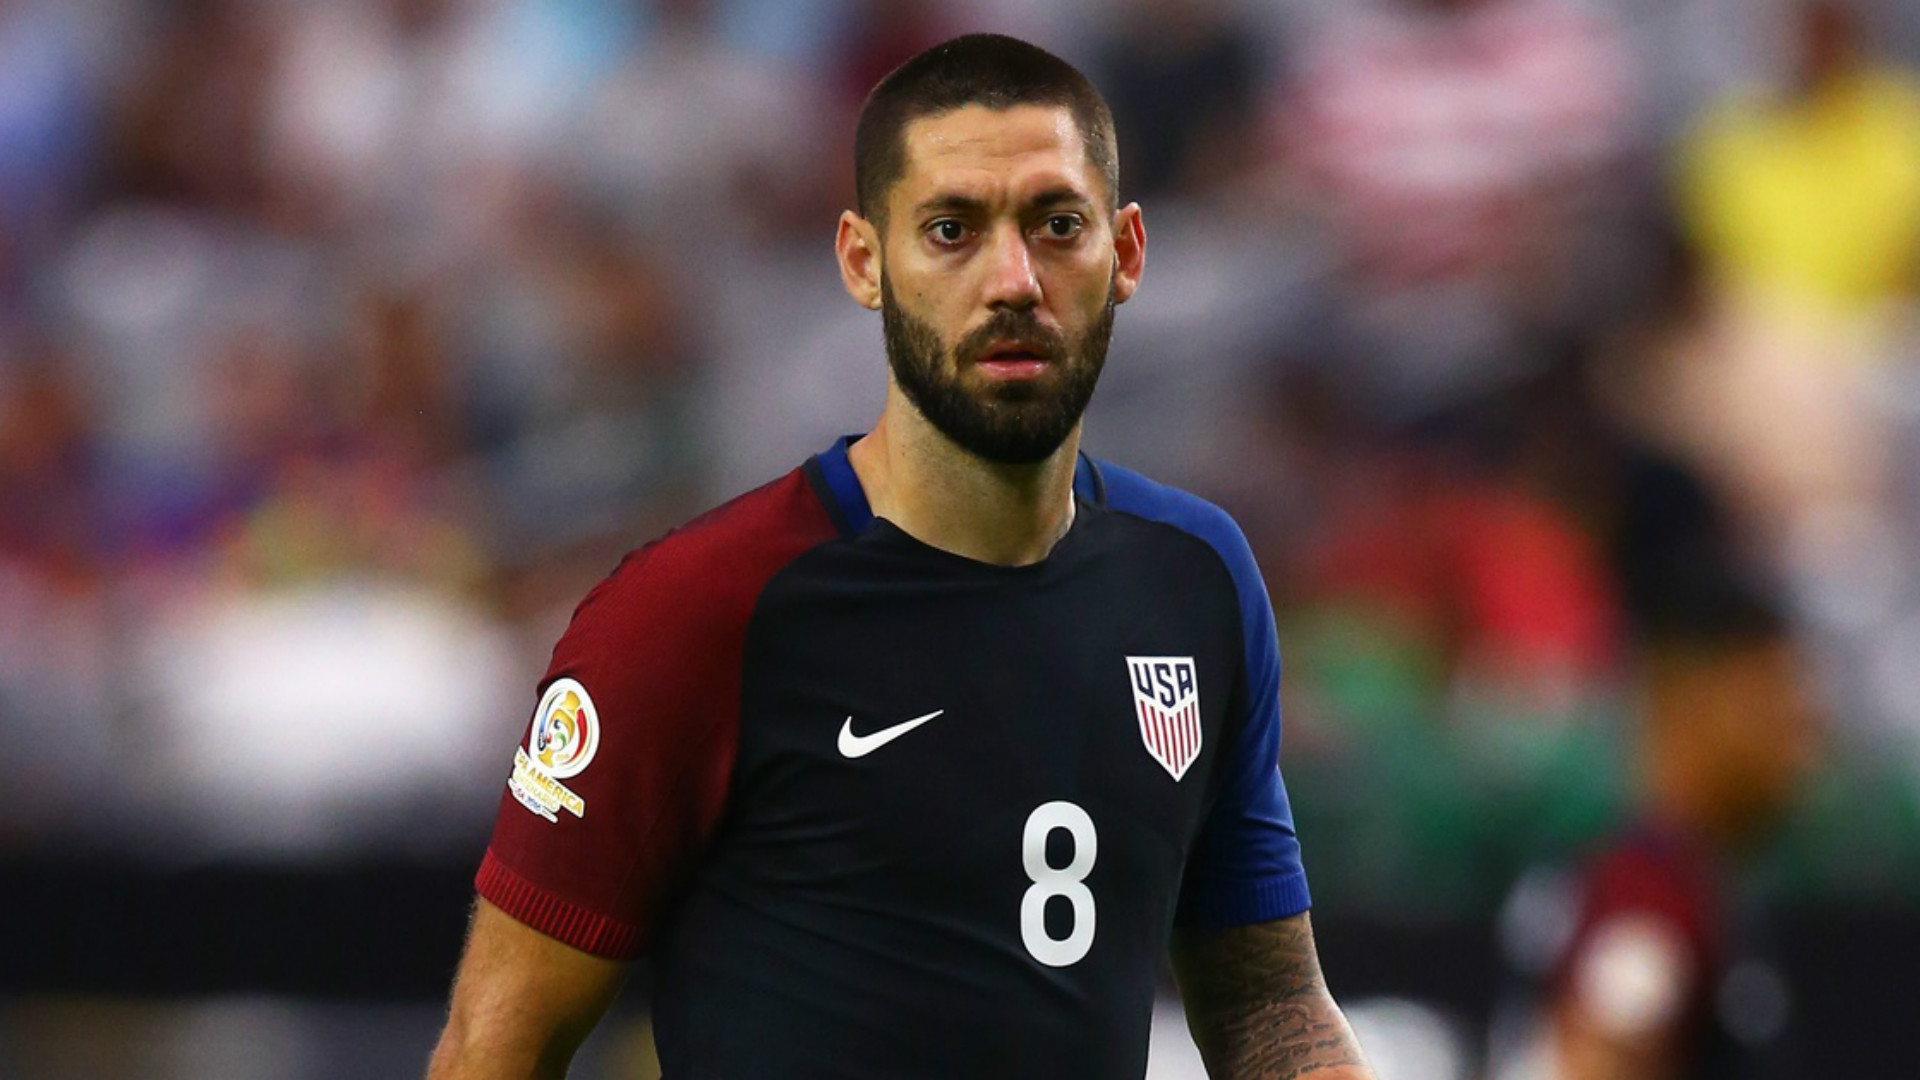 USMNT roster for March World Cup qualifiers announced